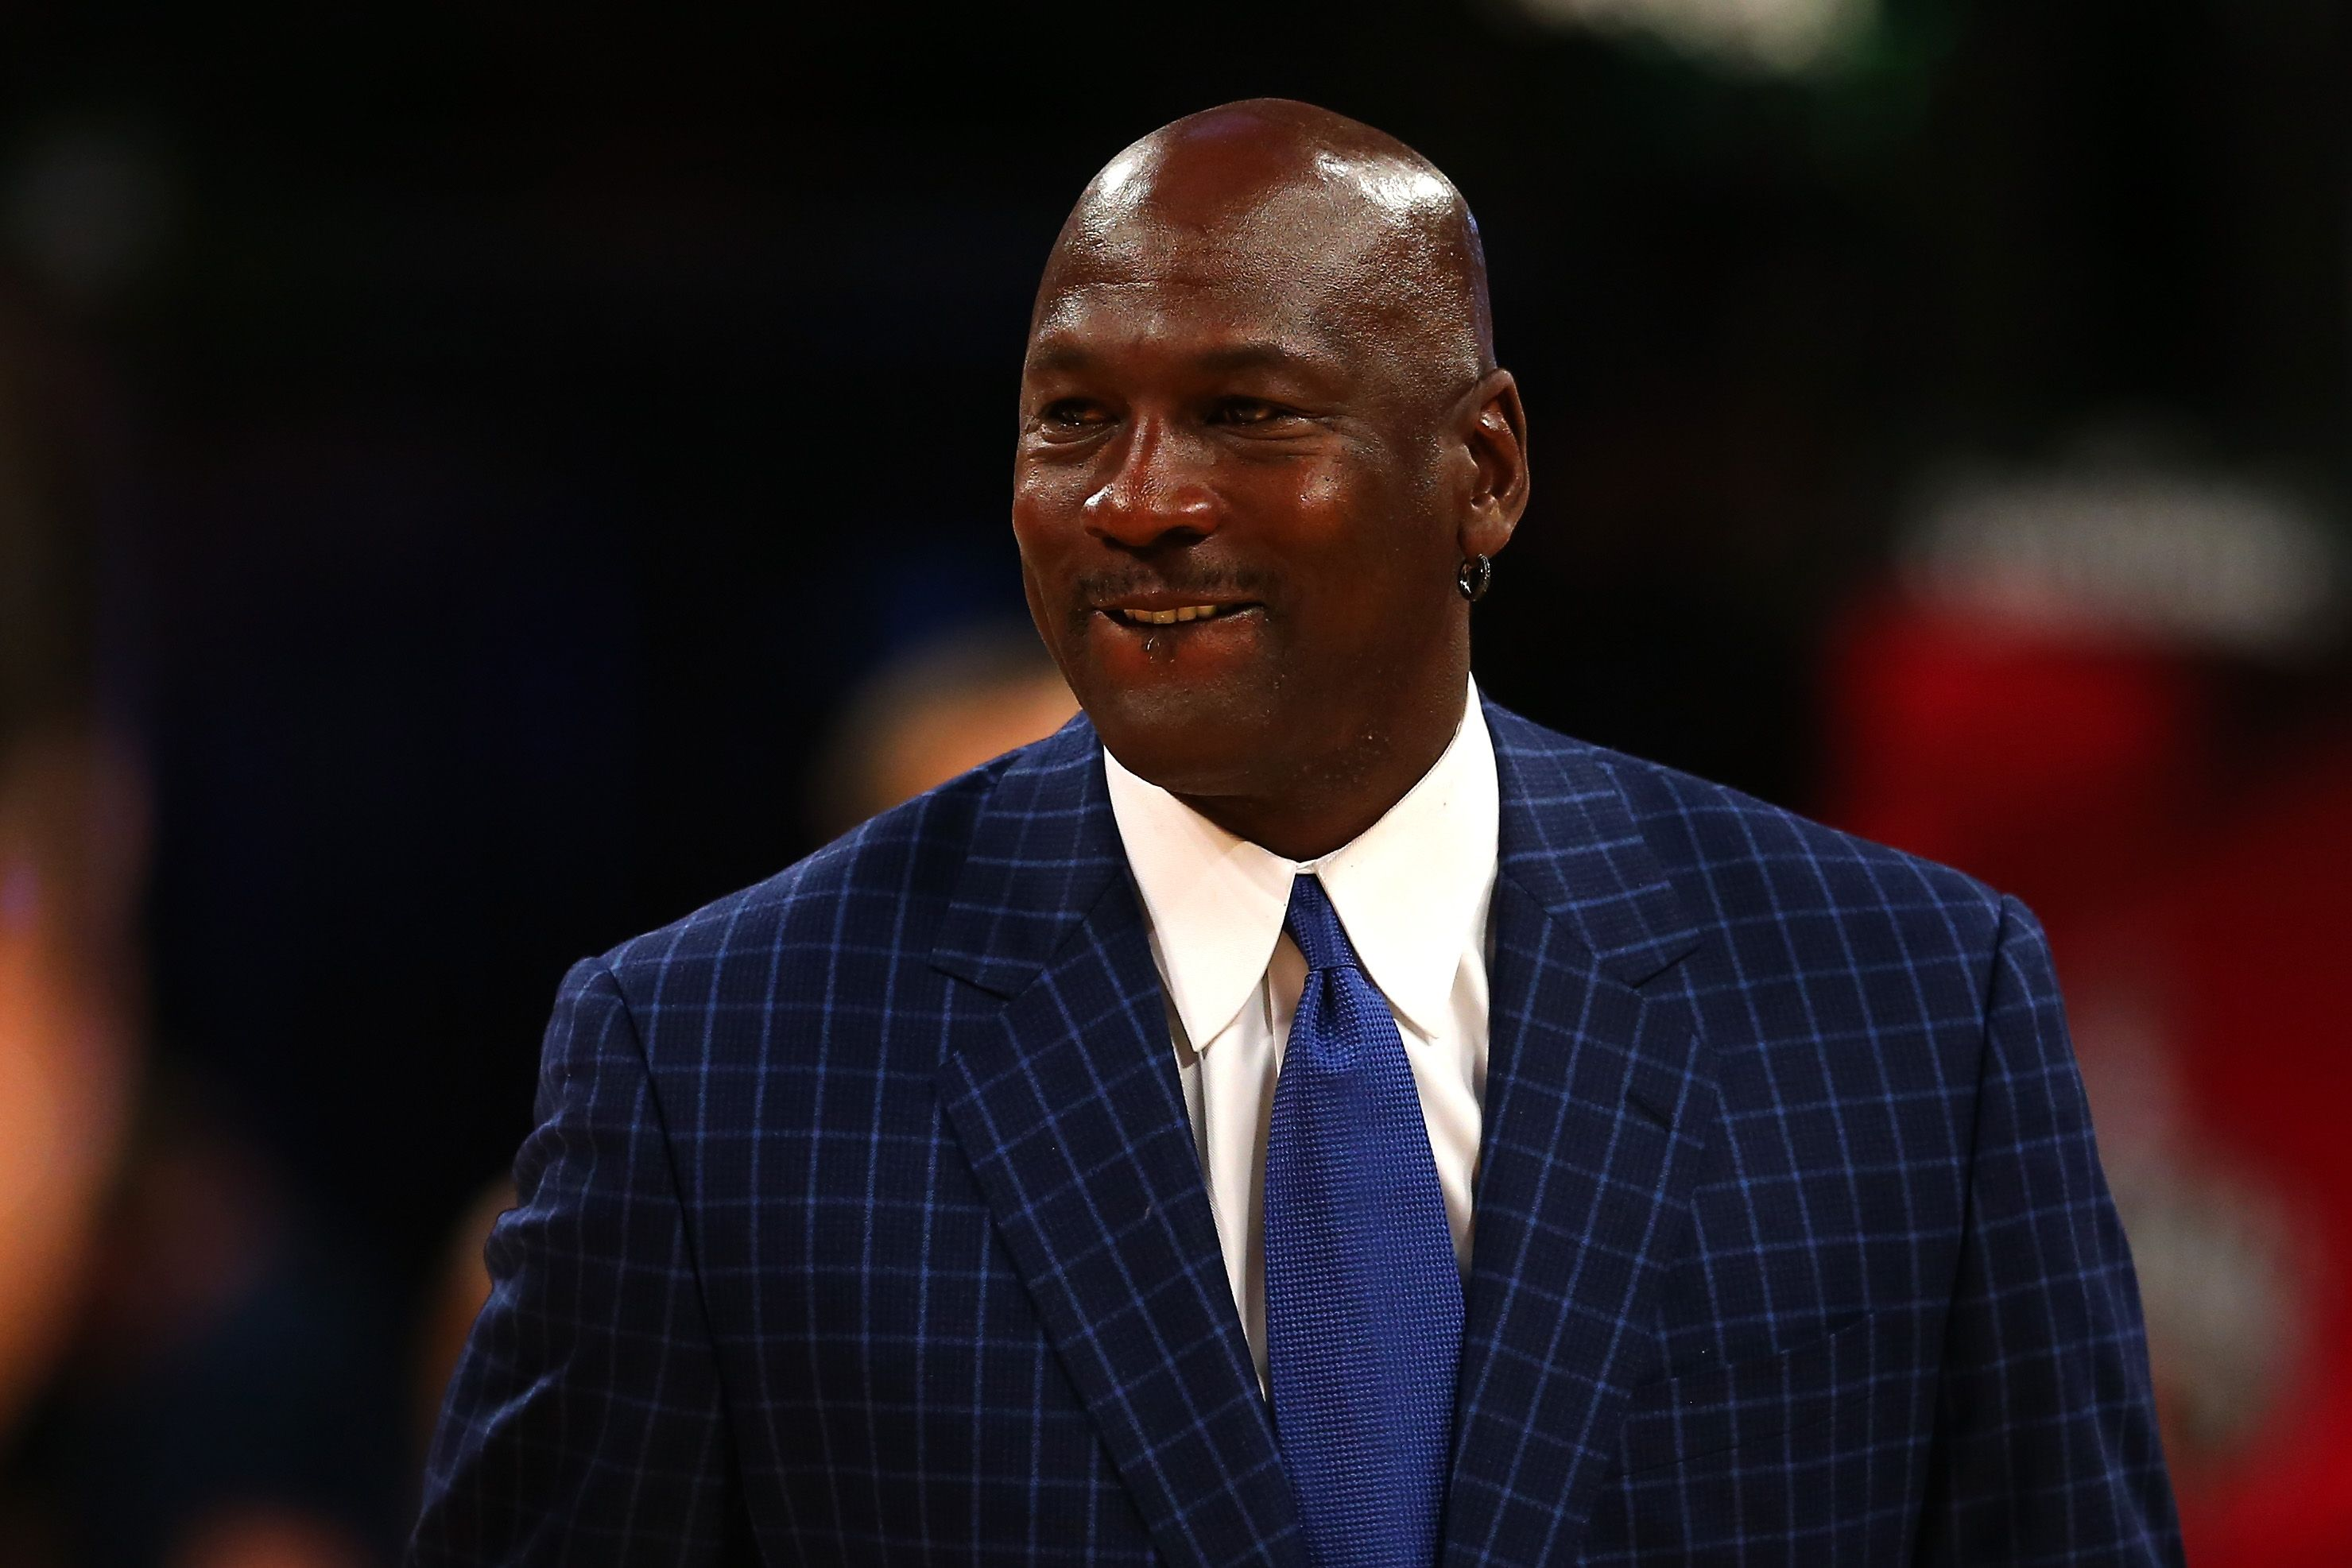 Michael Jordan walks off the court at the NBA All-Star Game 2016 at the Air Canada Centre on February 14, 2016   Photo: Getty Images